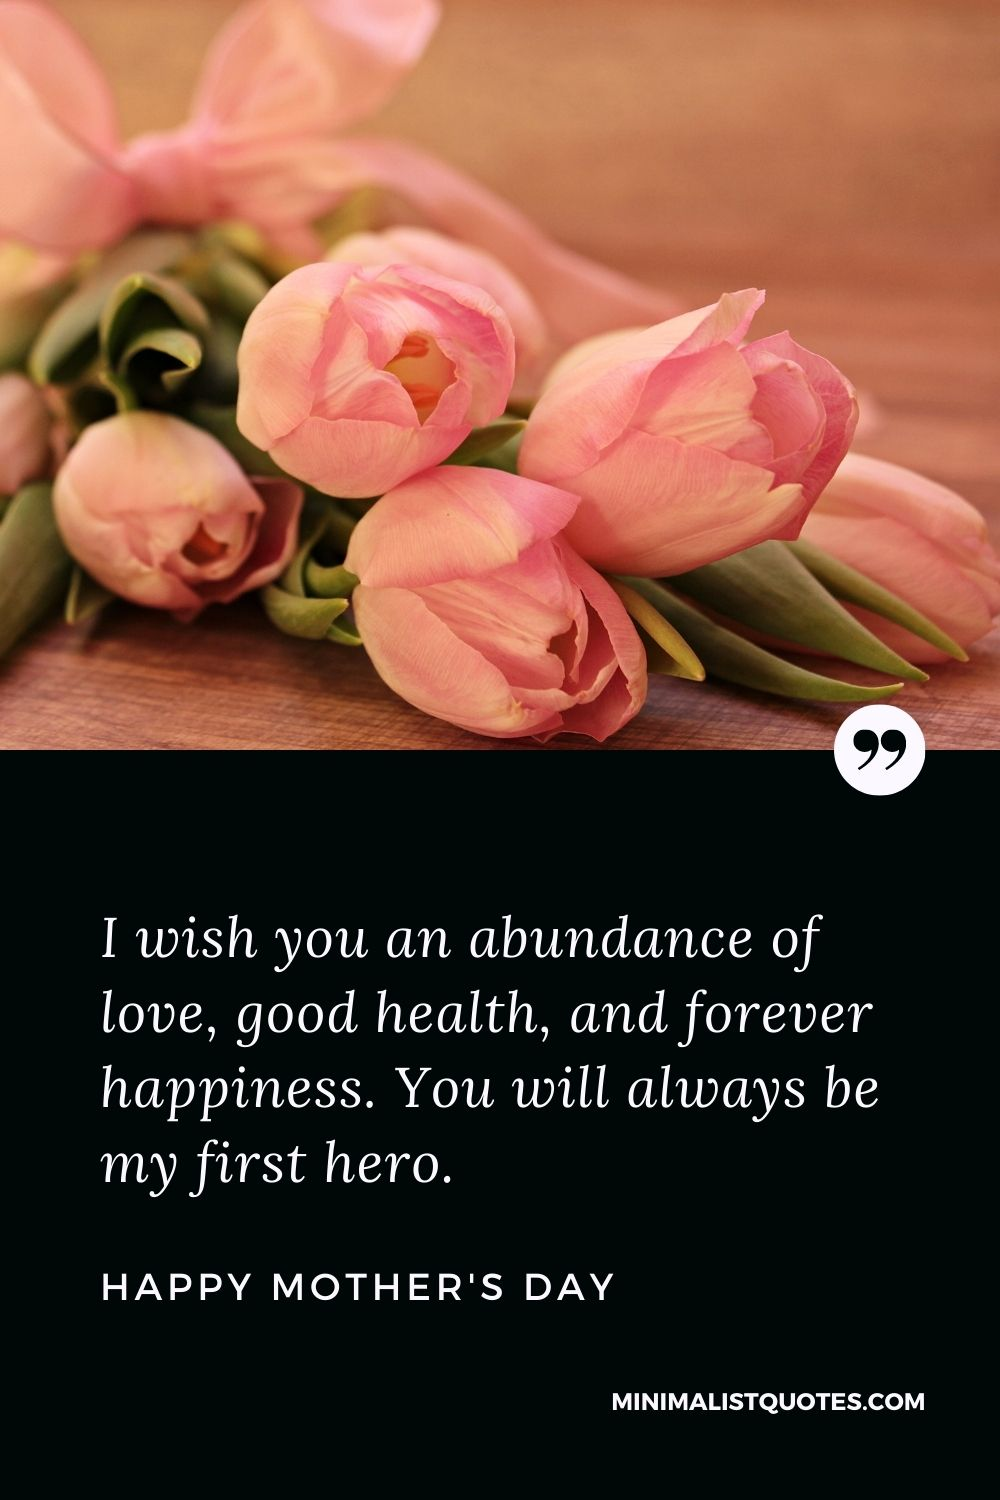 Mother's Day wish, message & quote with HD image: I wish you an abundance of love, good health, and forever happiness. You will always be my first hero. Happy Mother's Day!